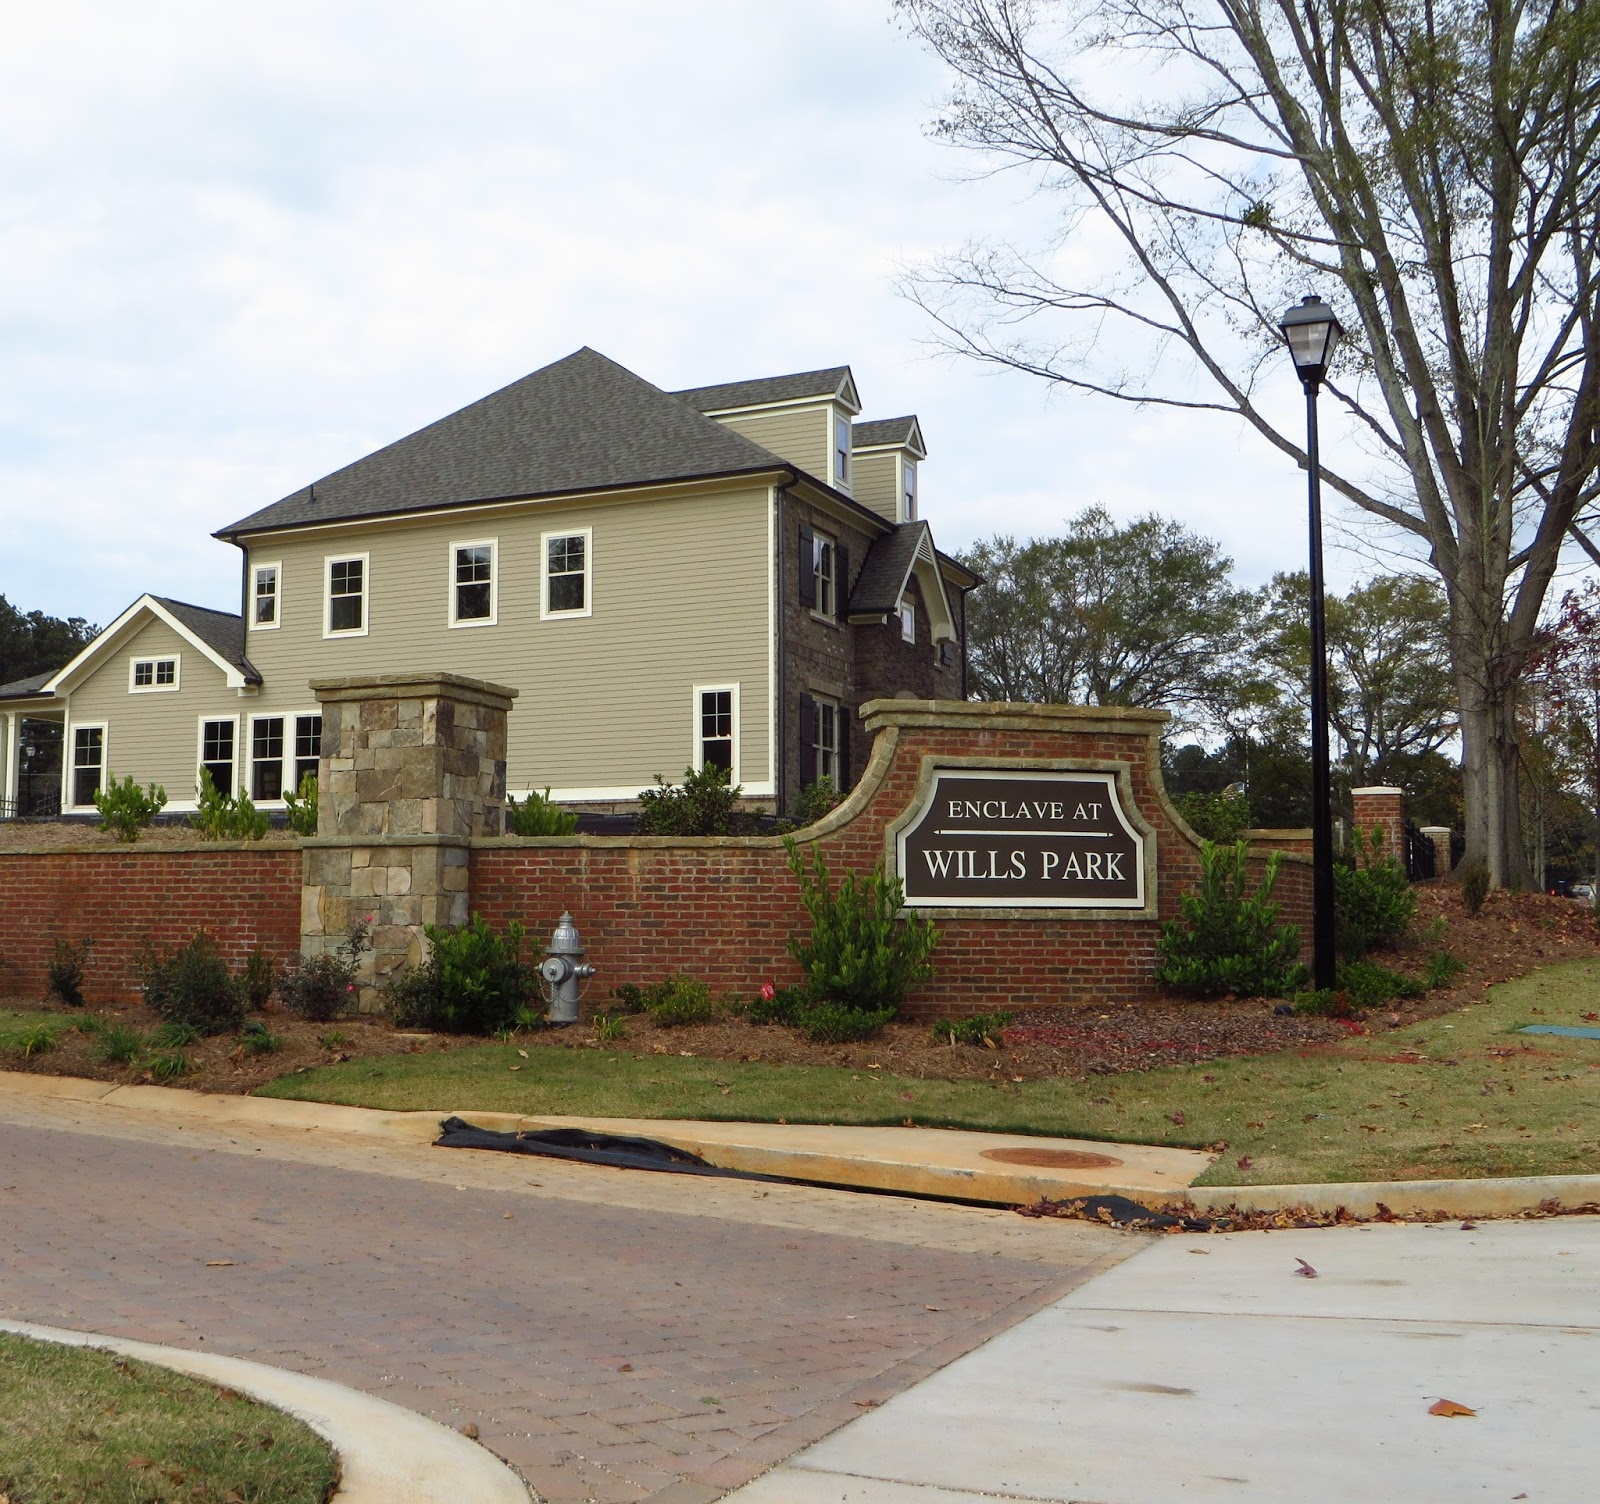 Enclave At Wills Park